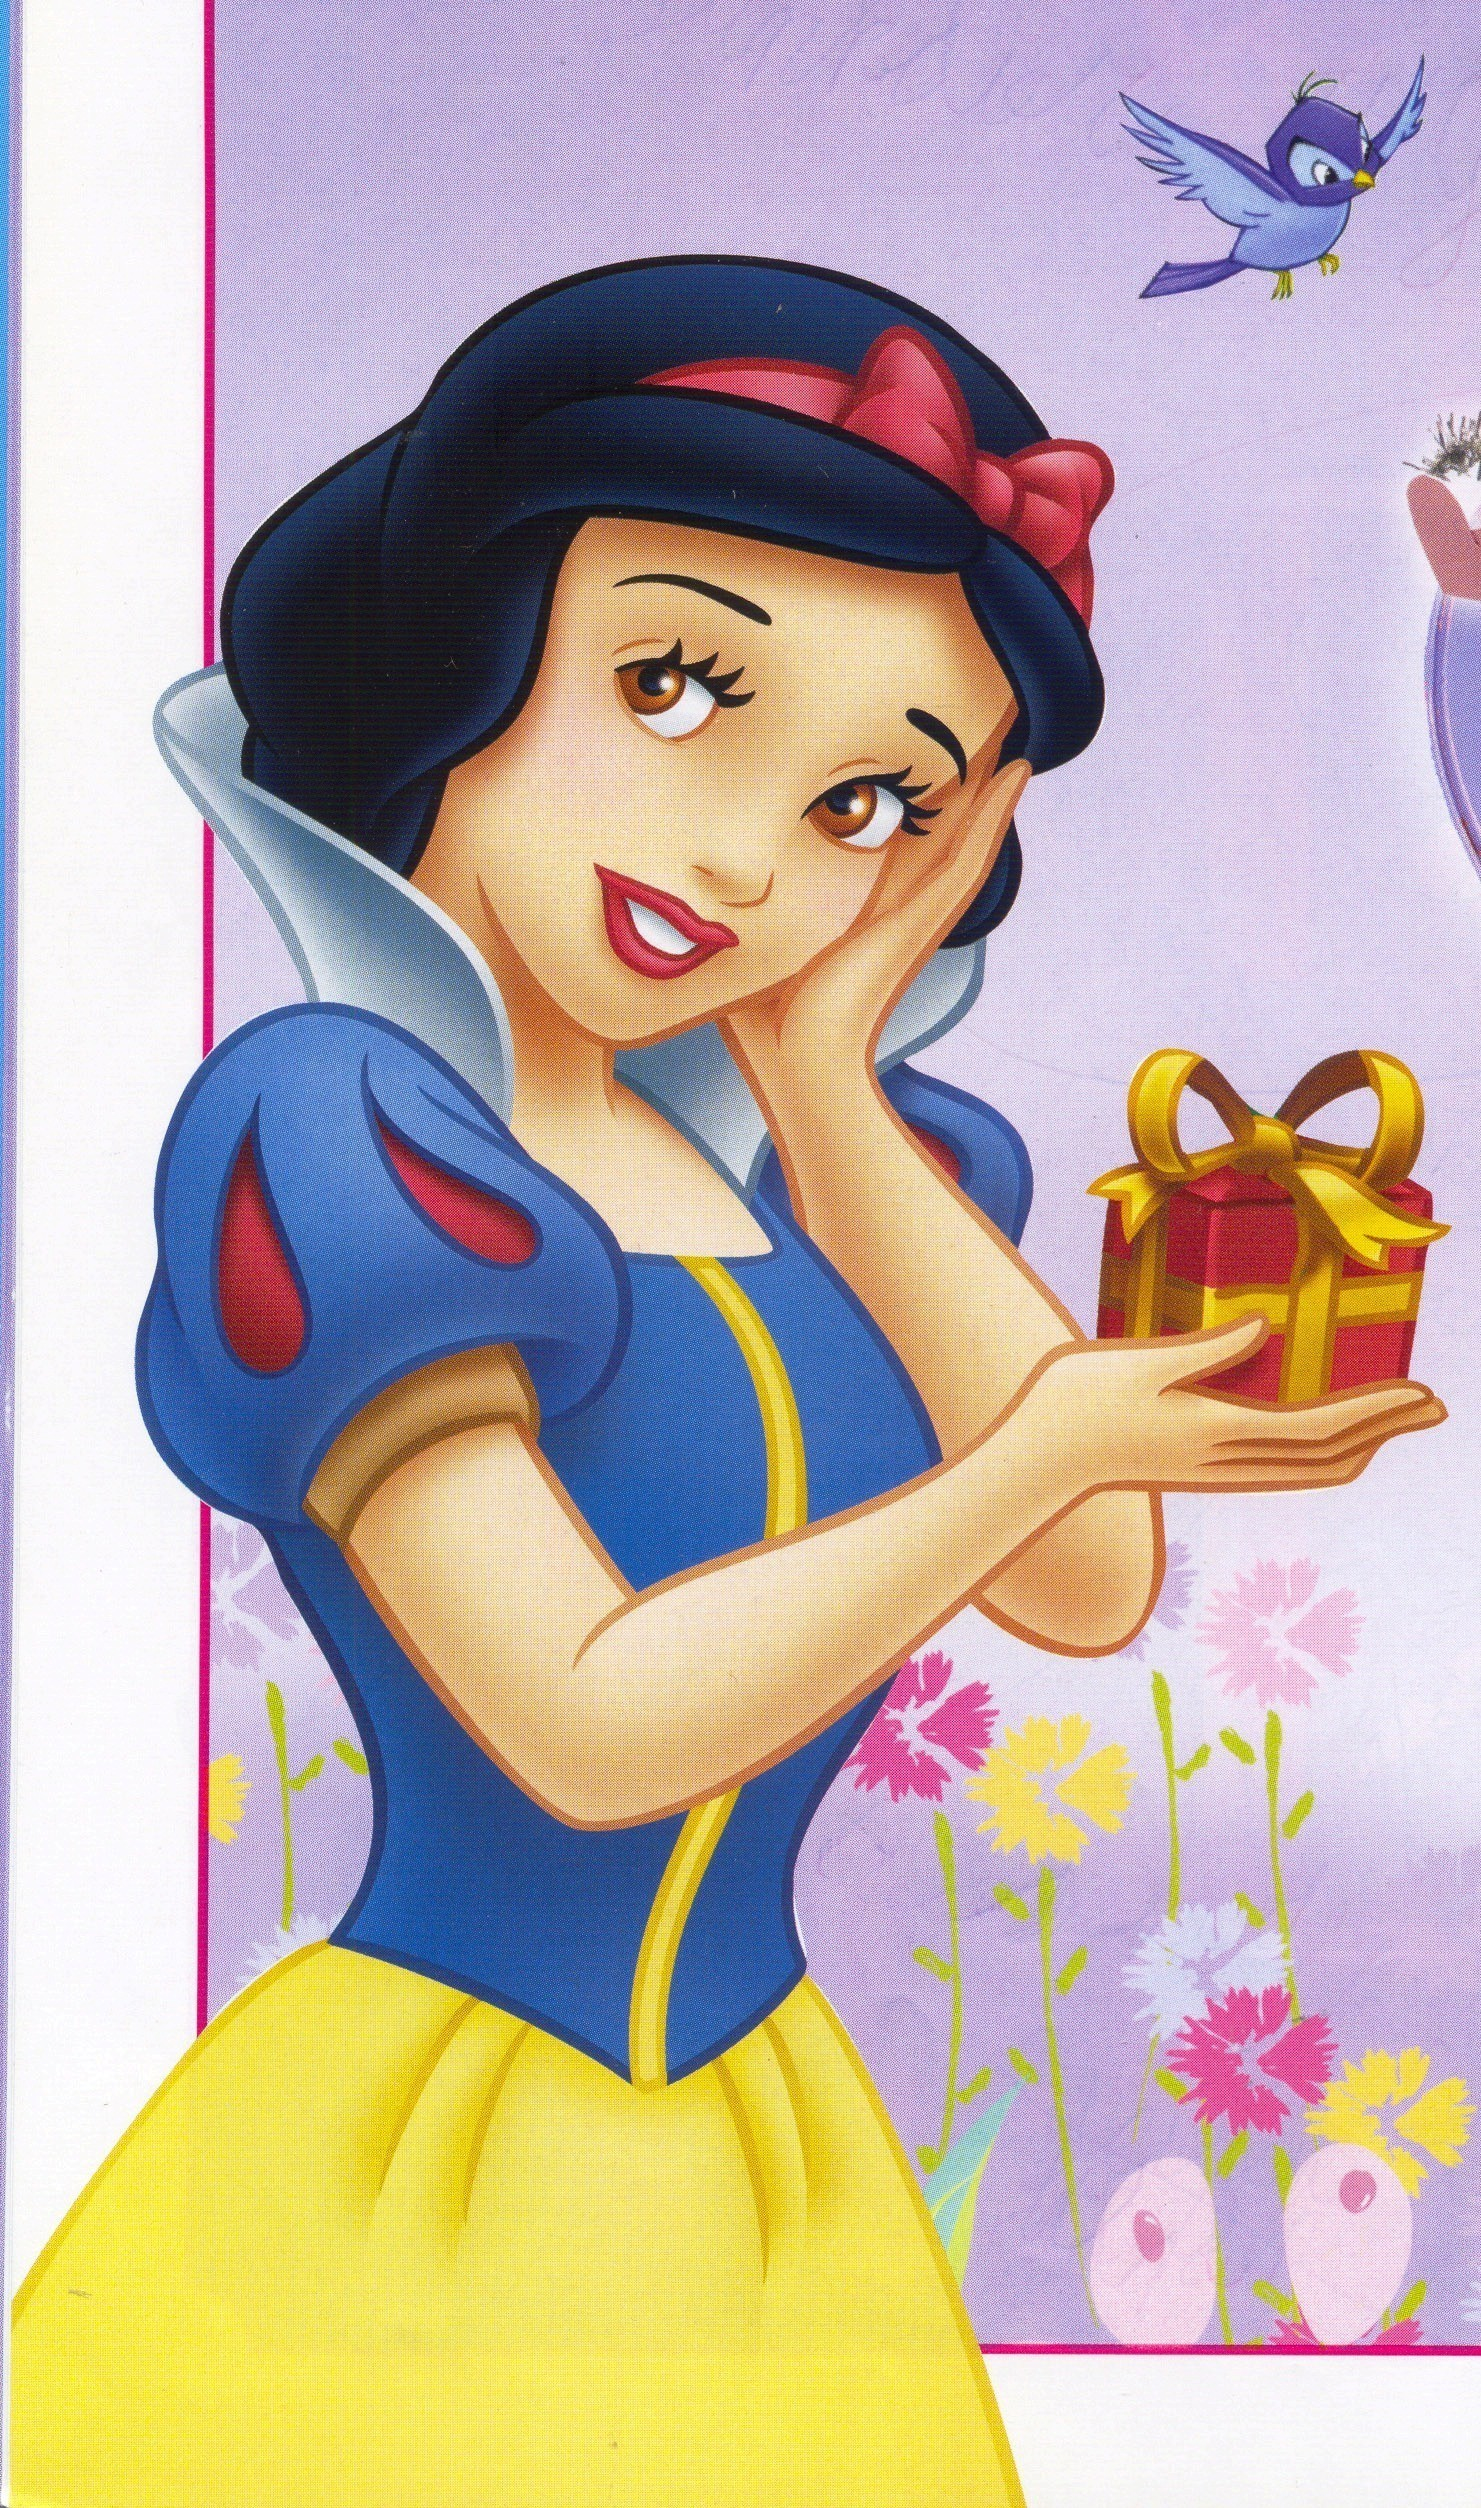 Snow White and the Seven Dwarfs Wallpaper (73+ images)